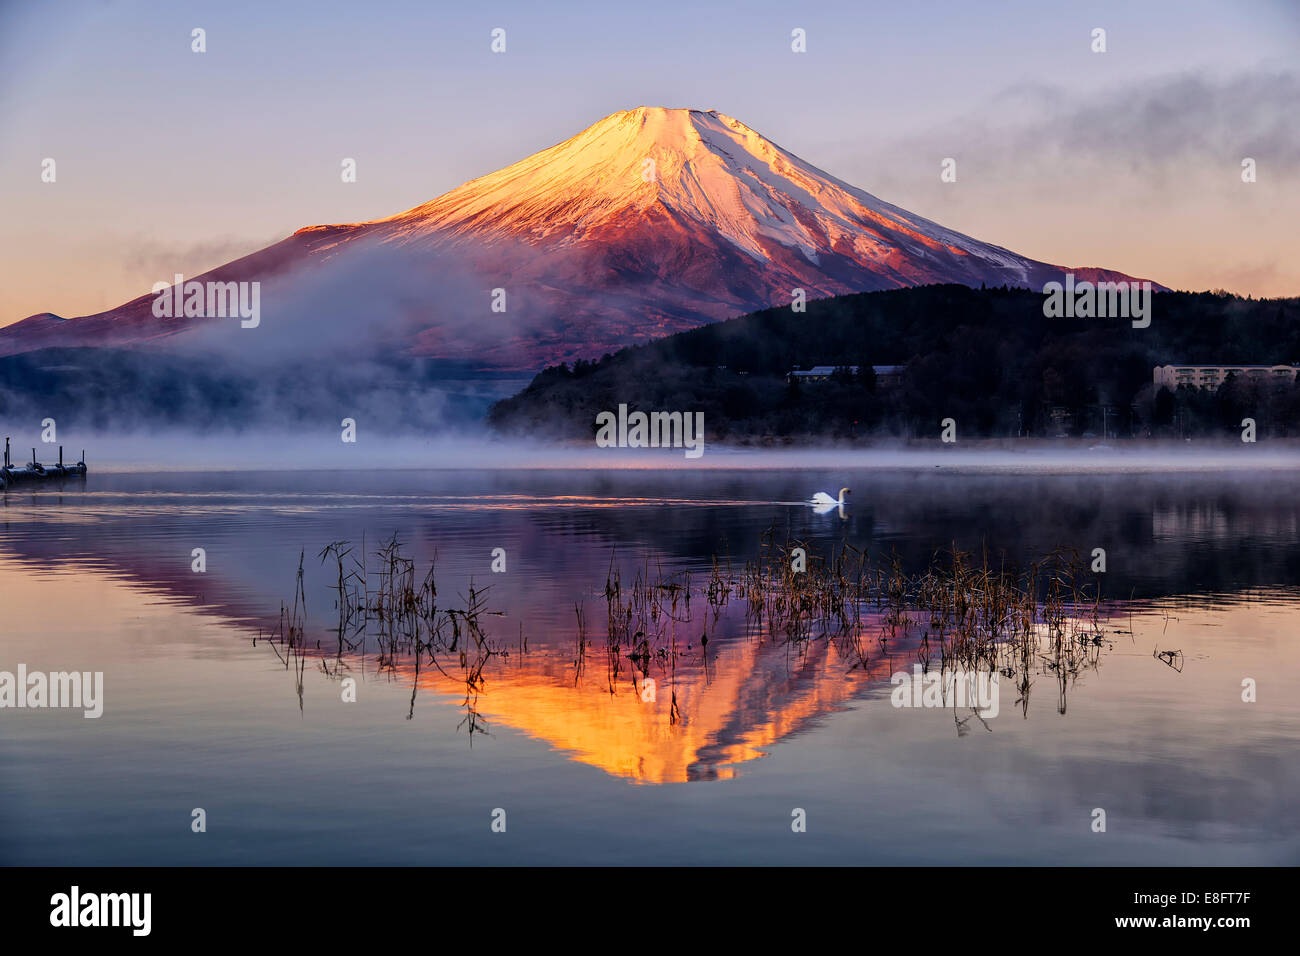 Japan, Mt.Fuji reflecting in Yamanaka lake - Stock Image